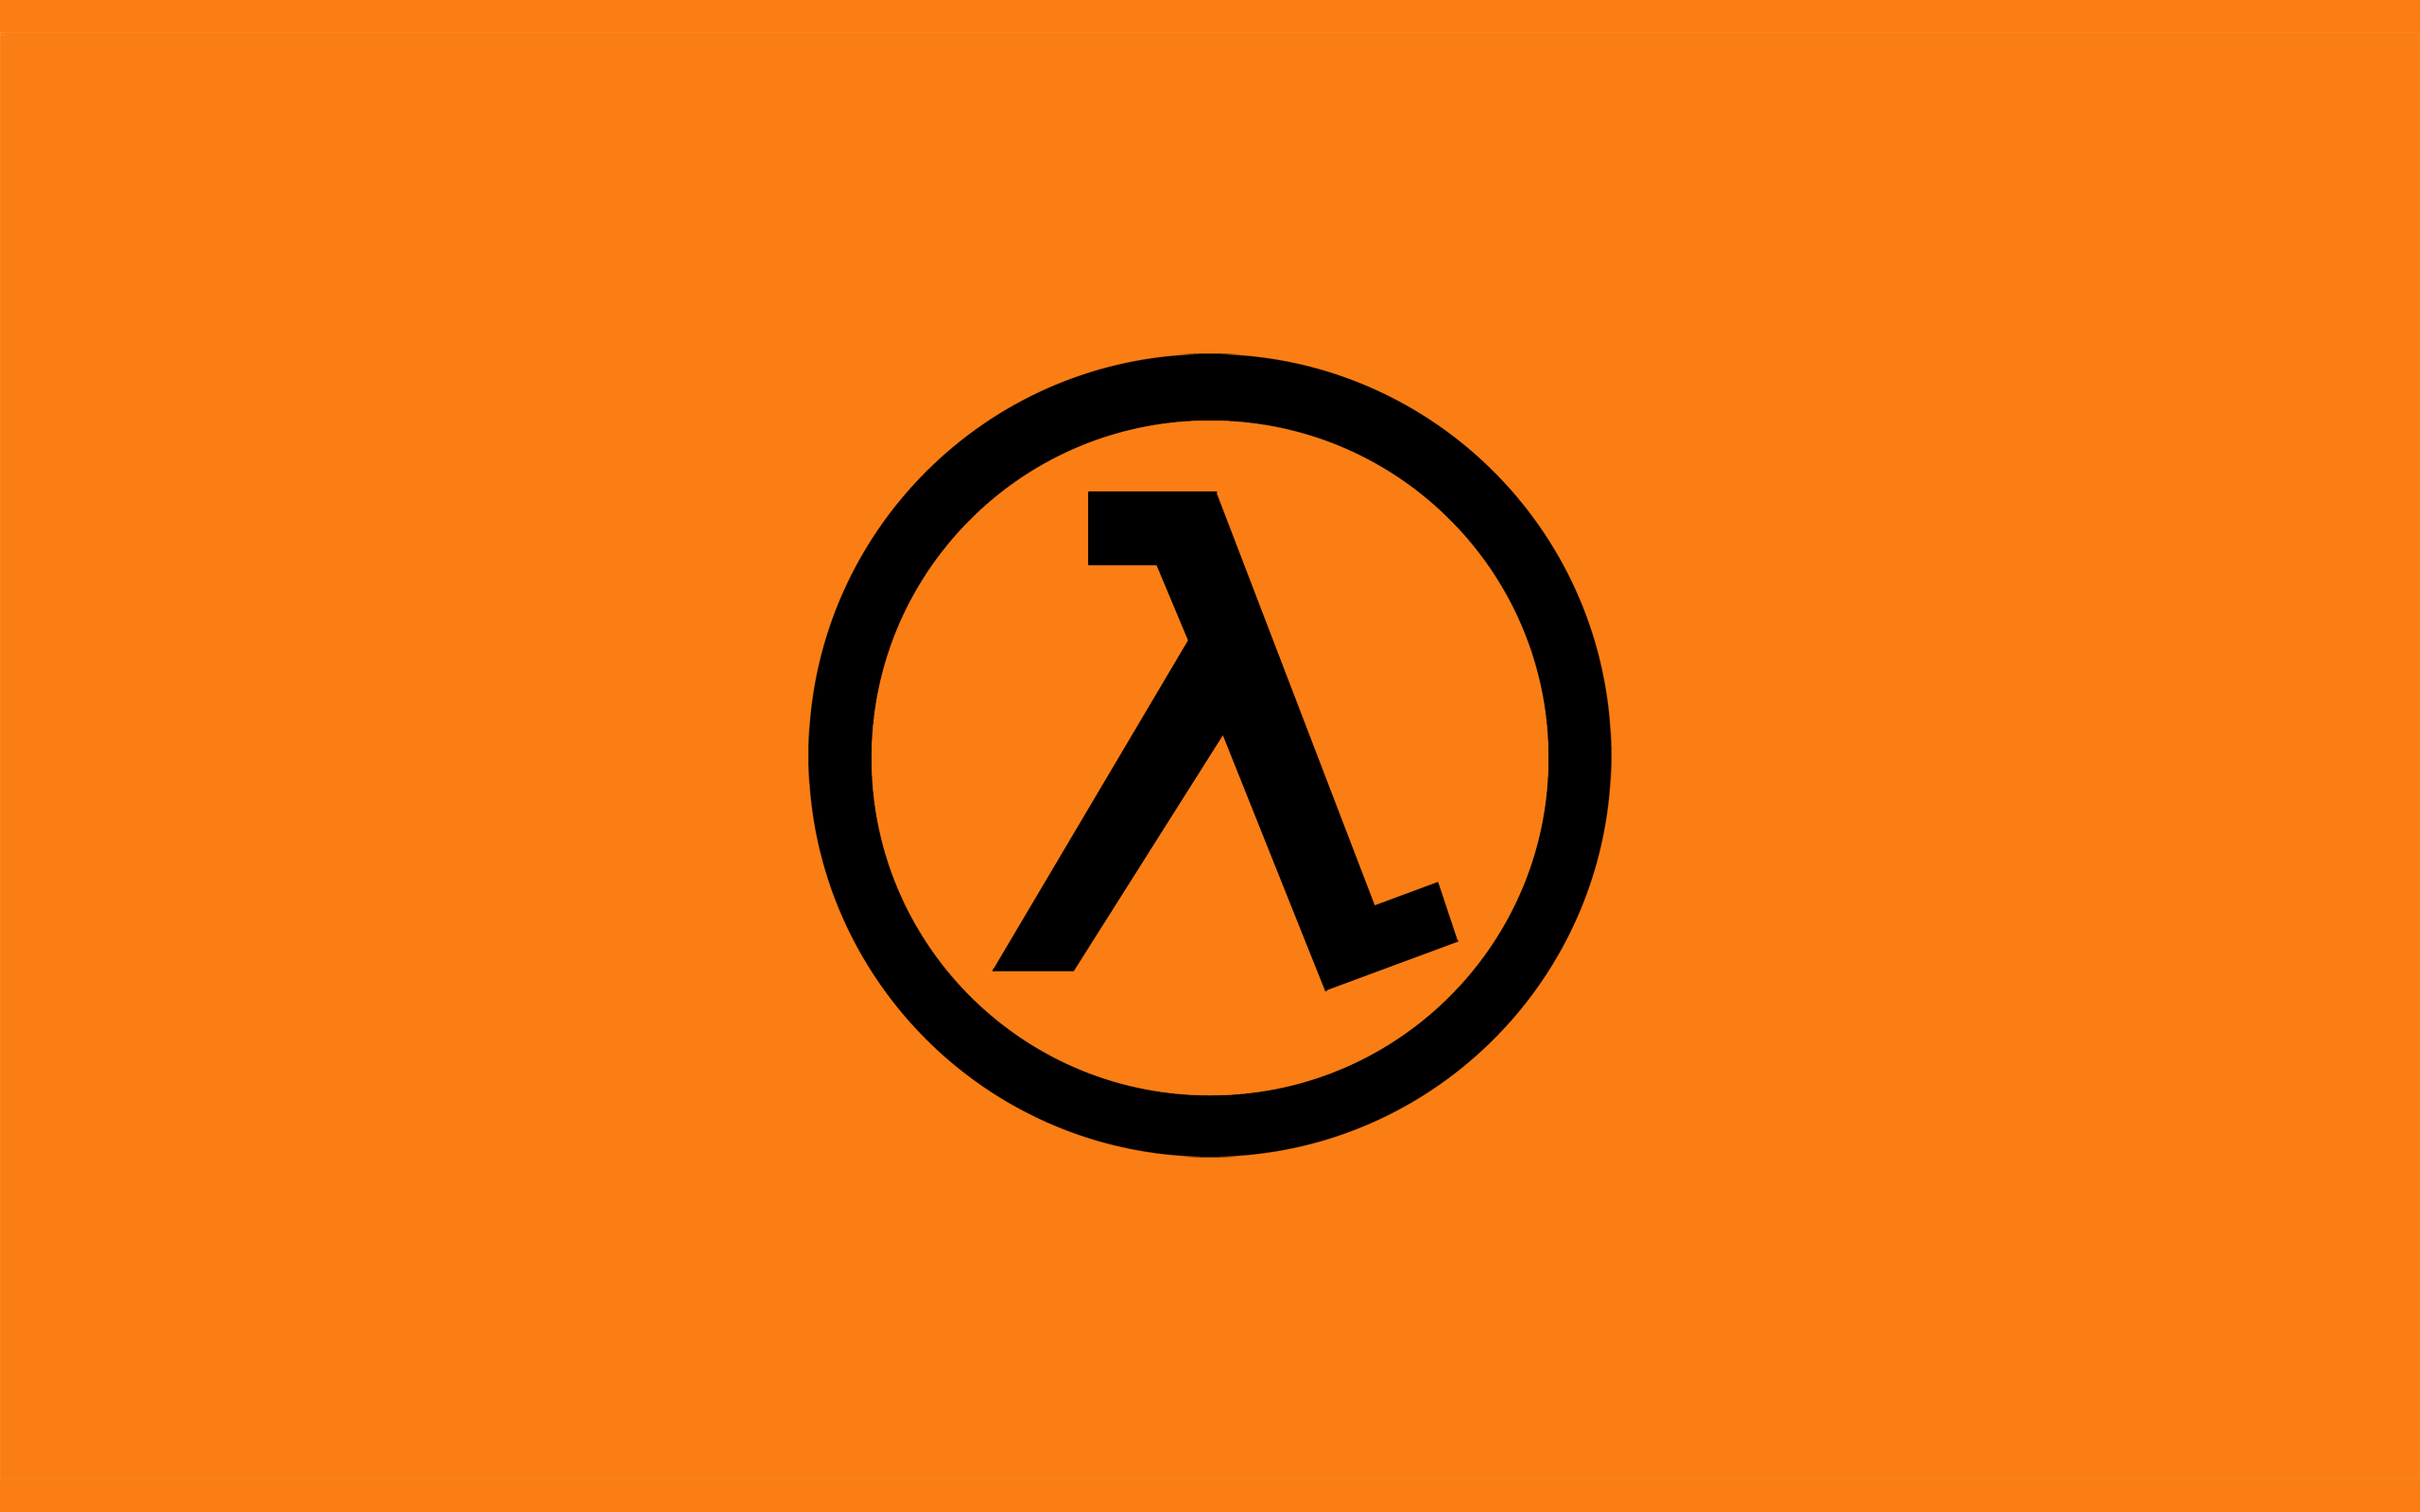 Images of Half-life | 2560x1600